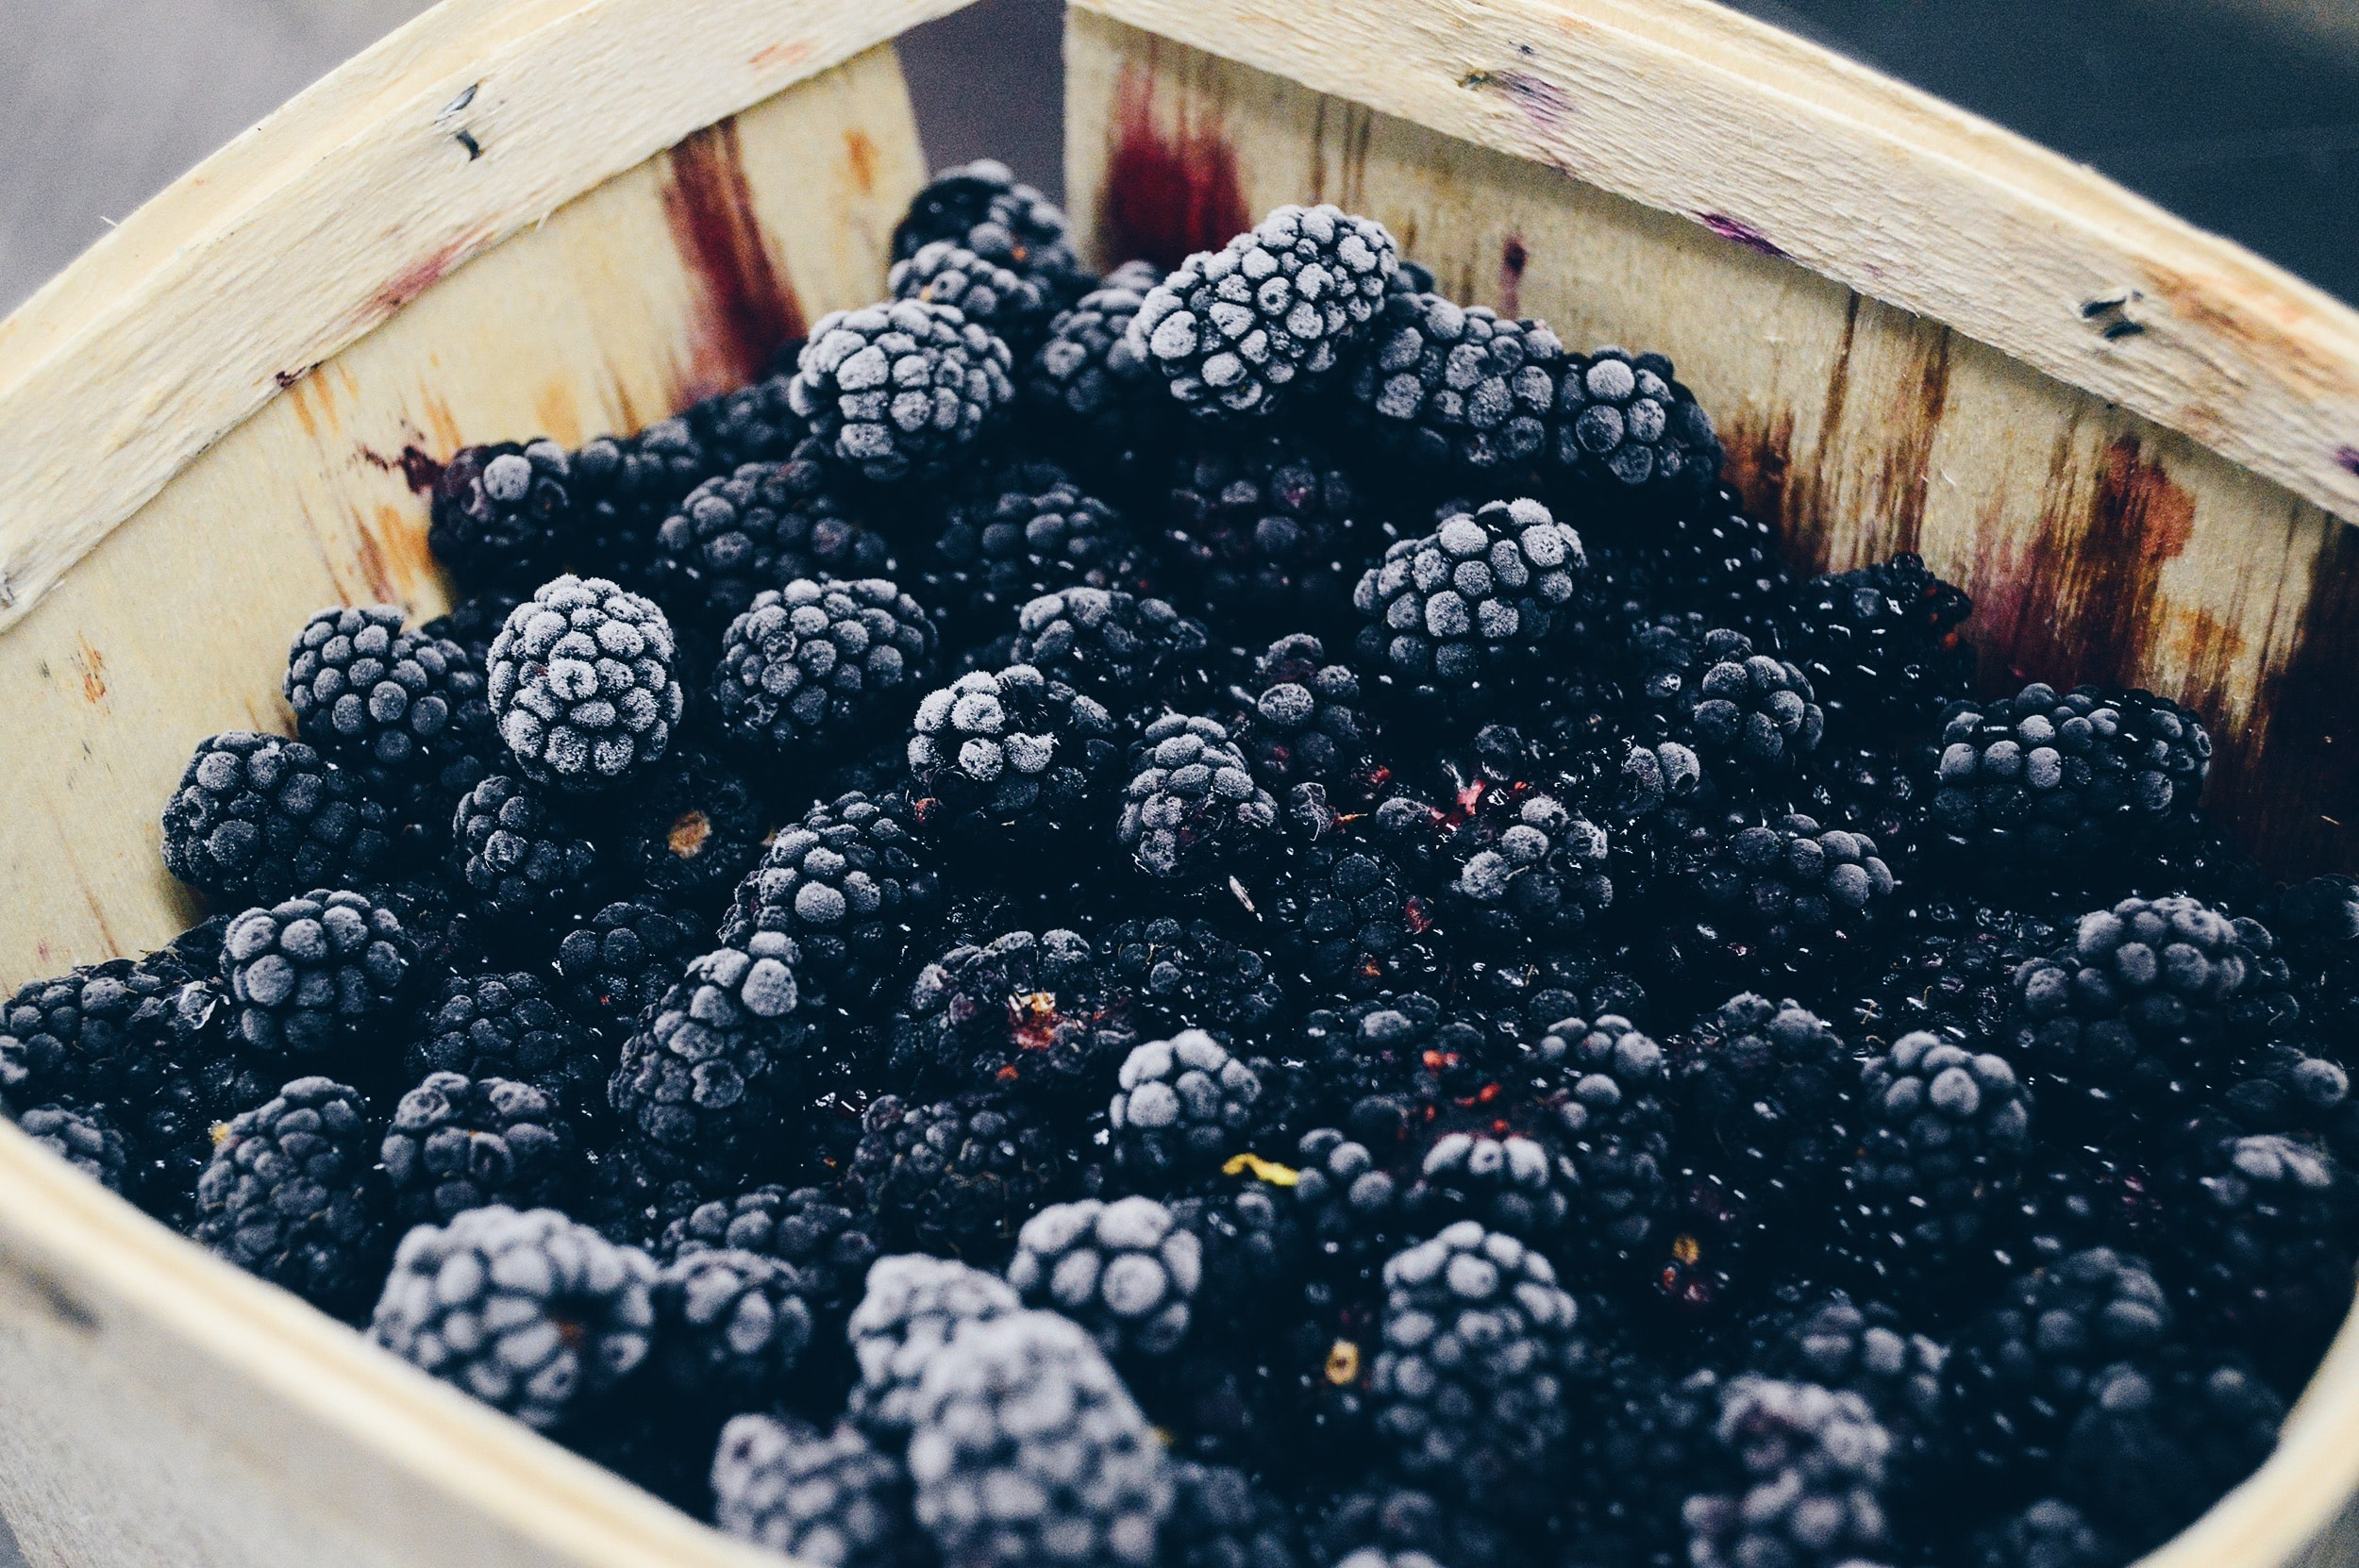 A basket full of blackberries